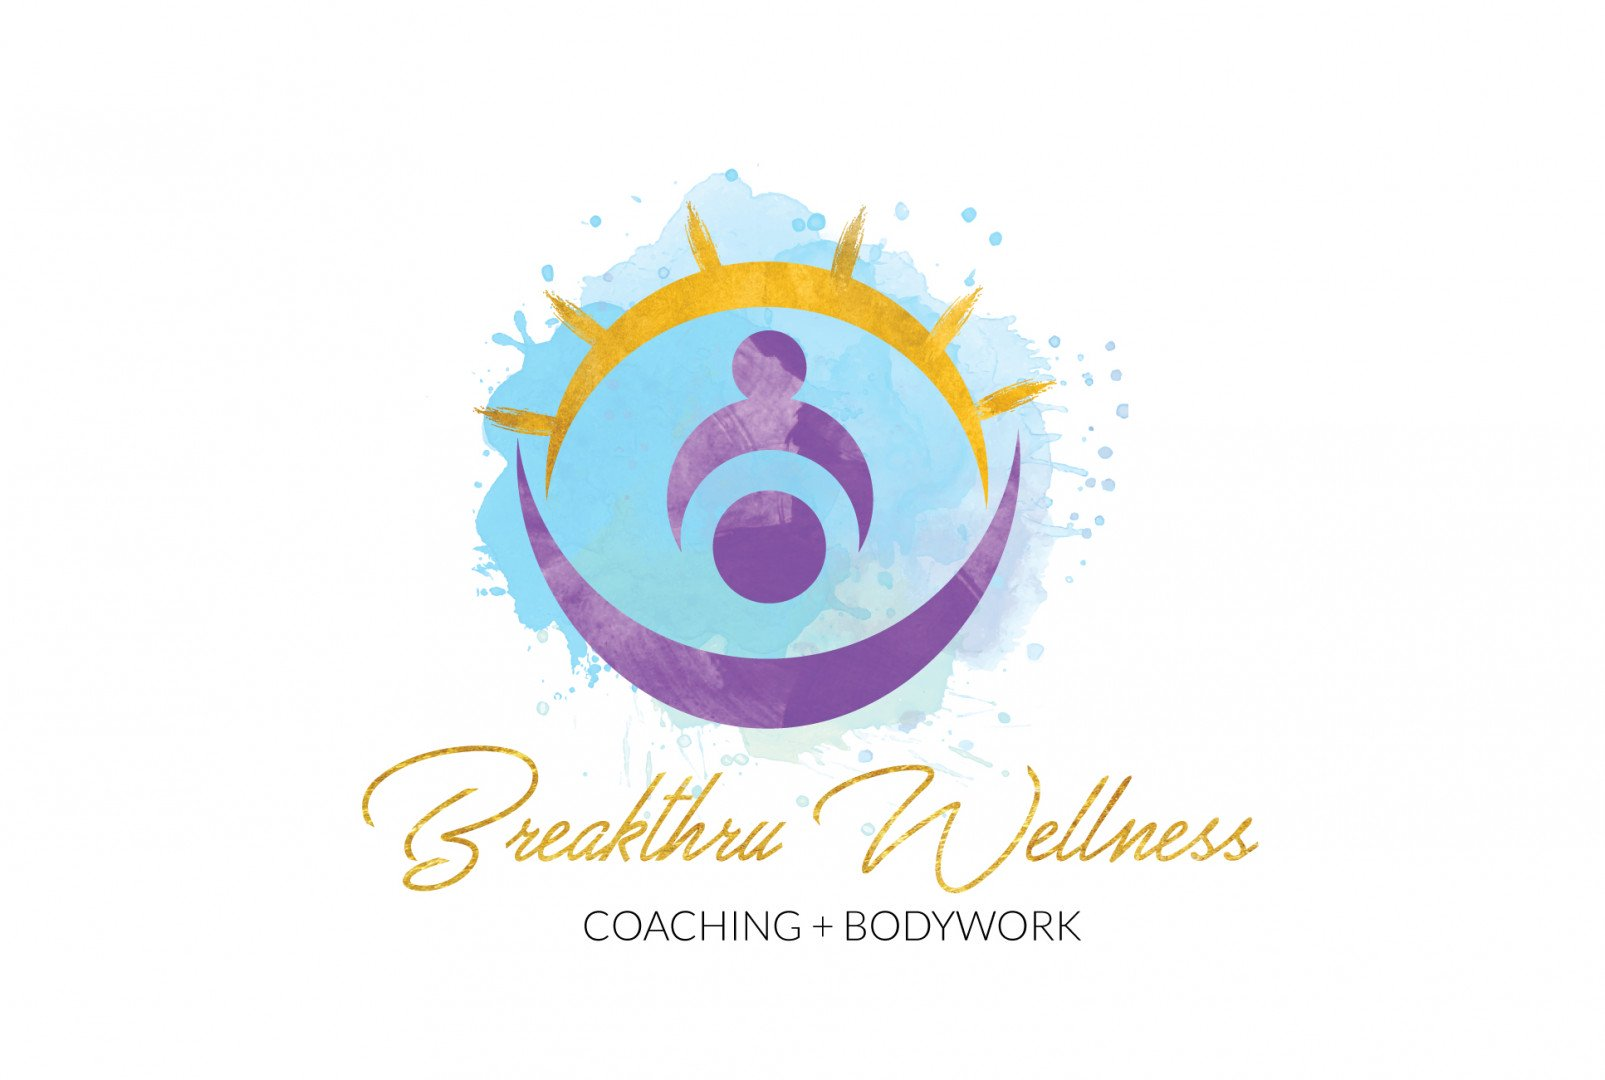 Breakthru Wellness * Coaching + Bodywork